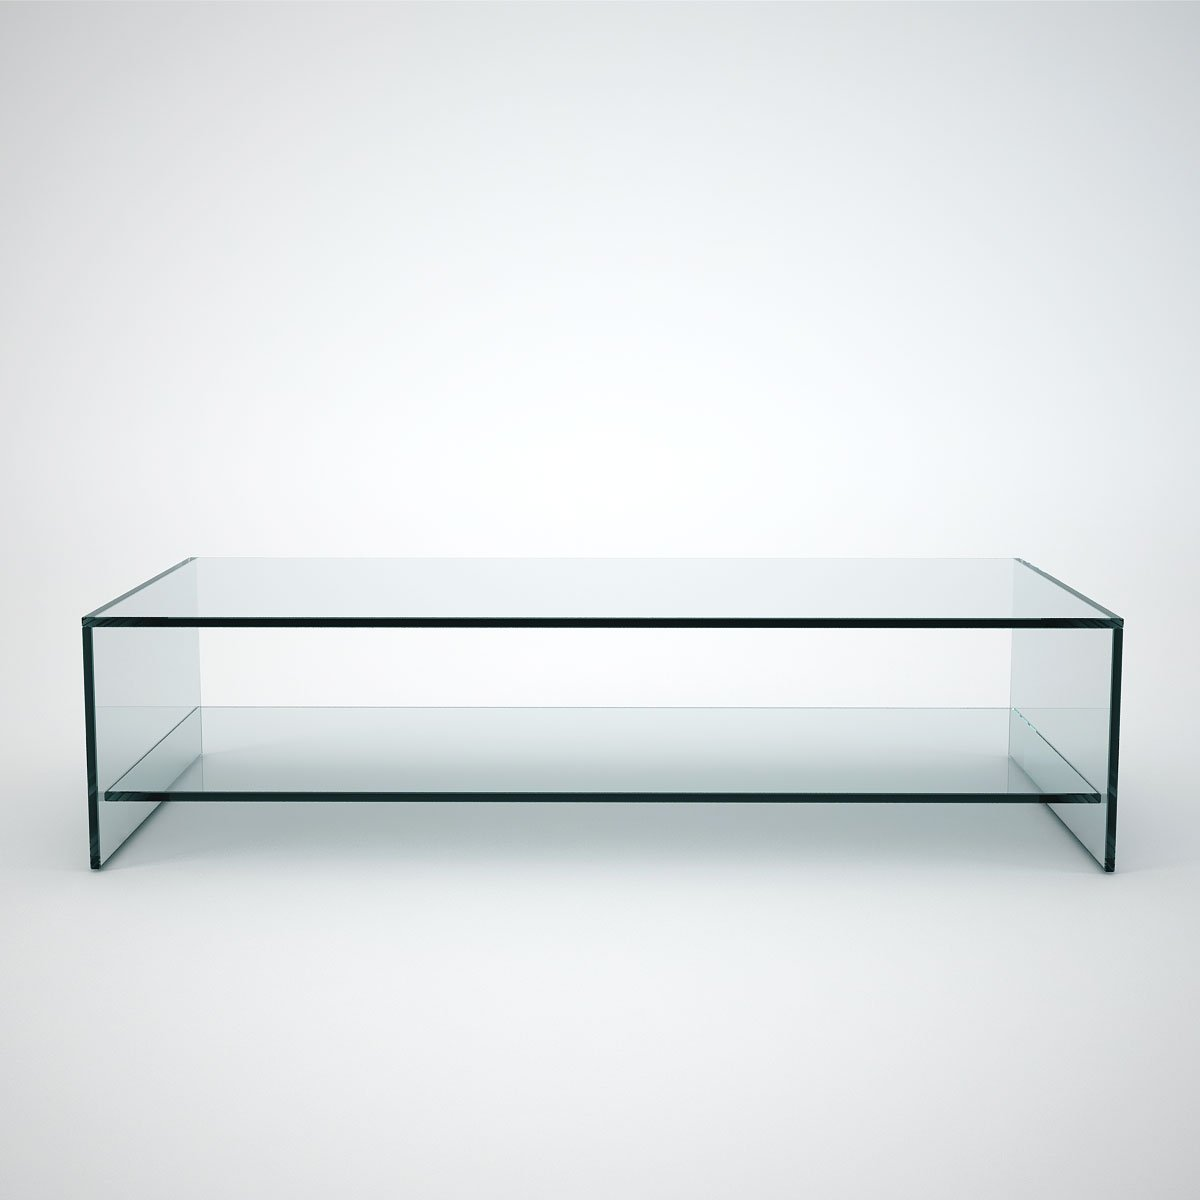 Judd Rectangle Glass Coffee Table With Shelf Klarity Glass Furniture